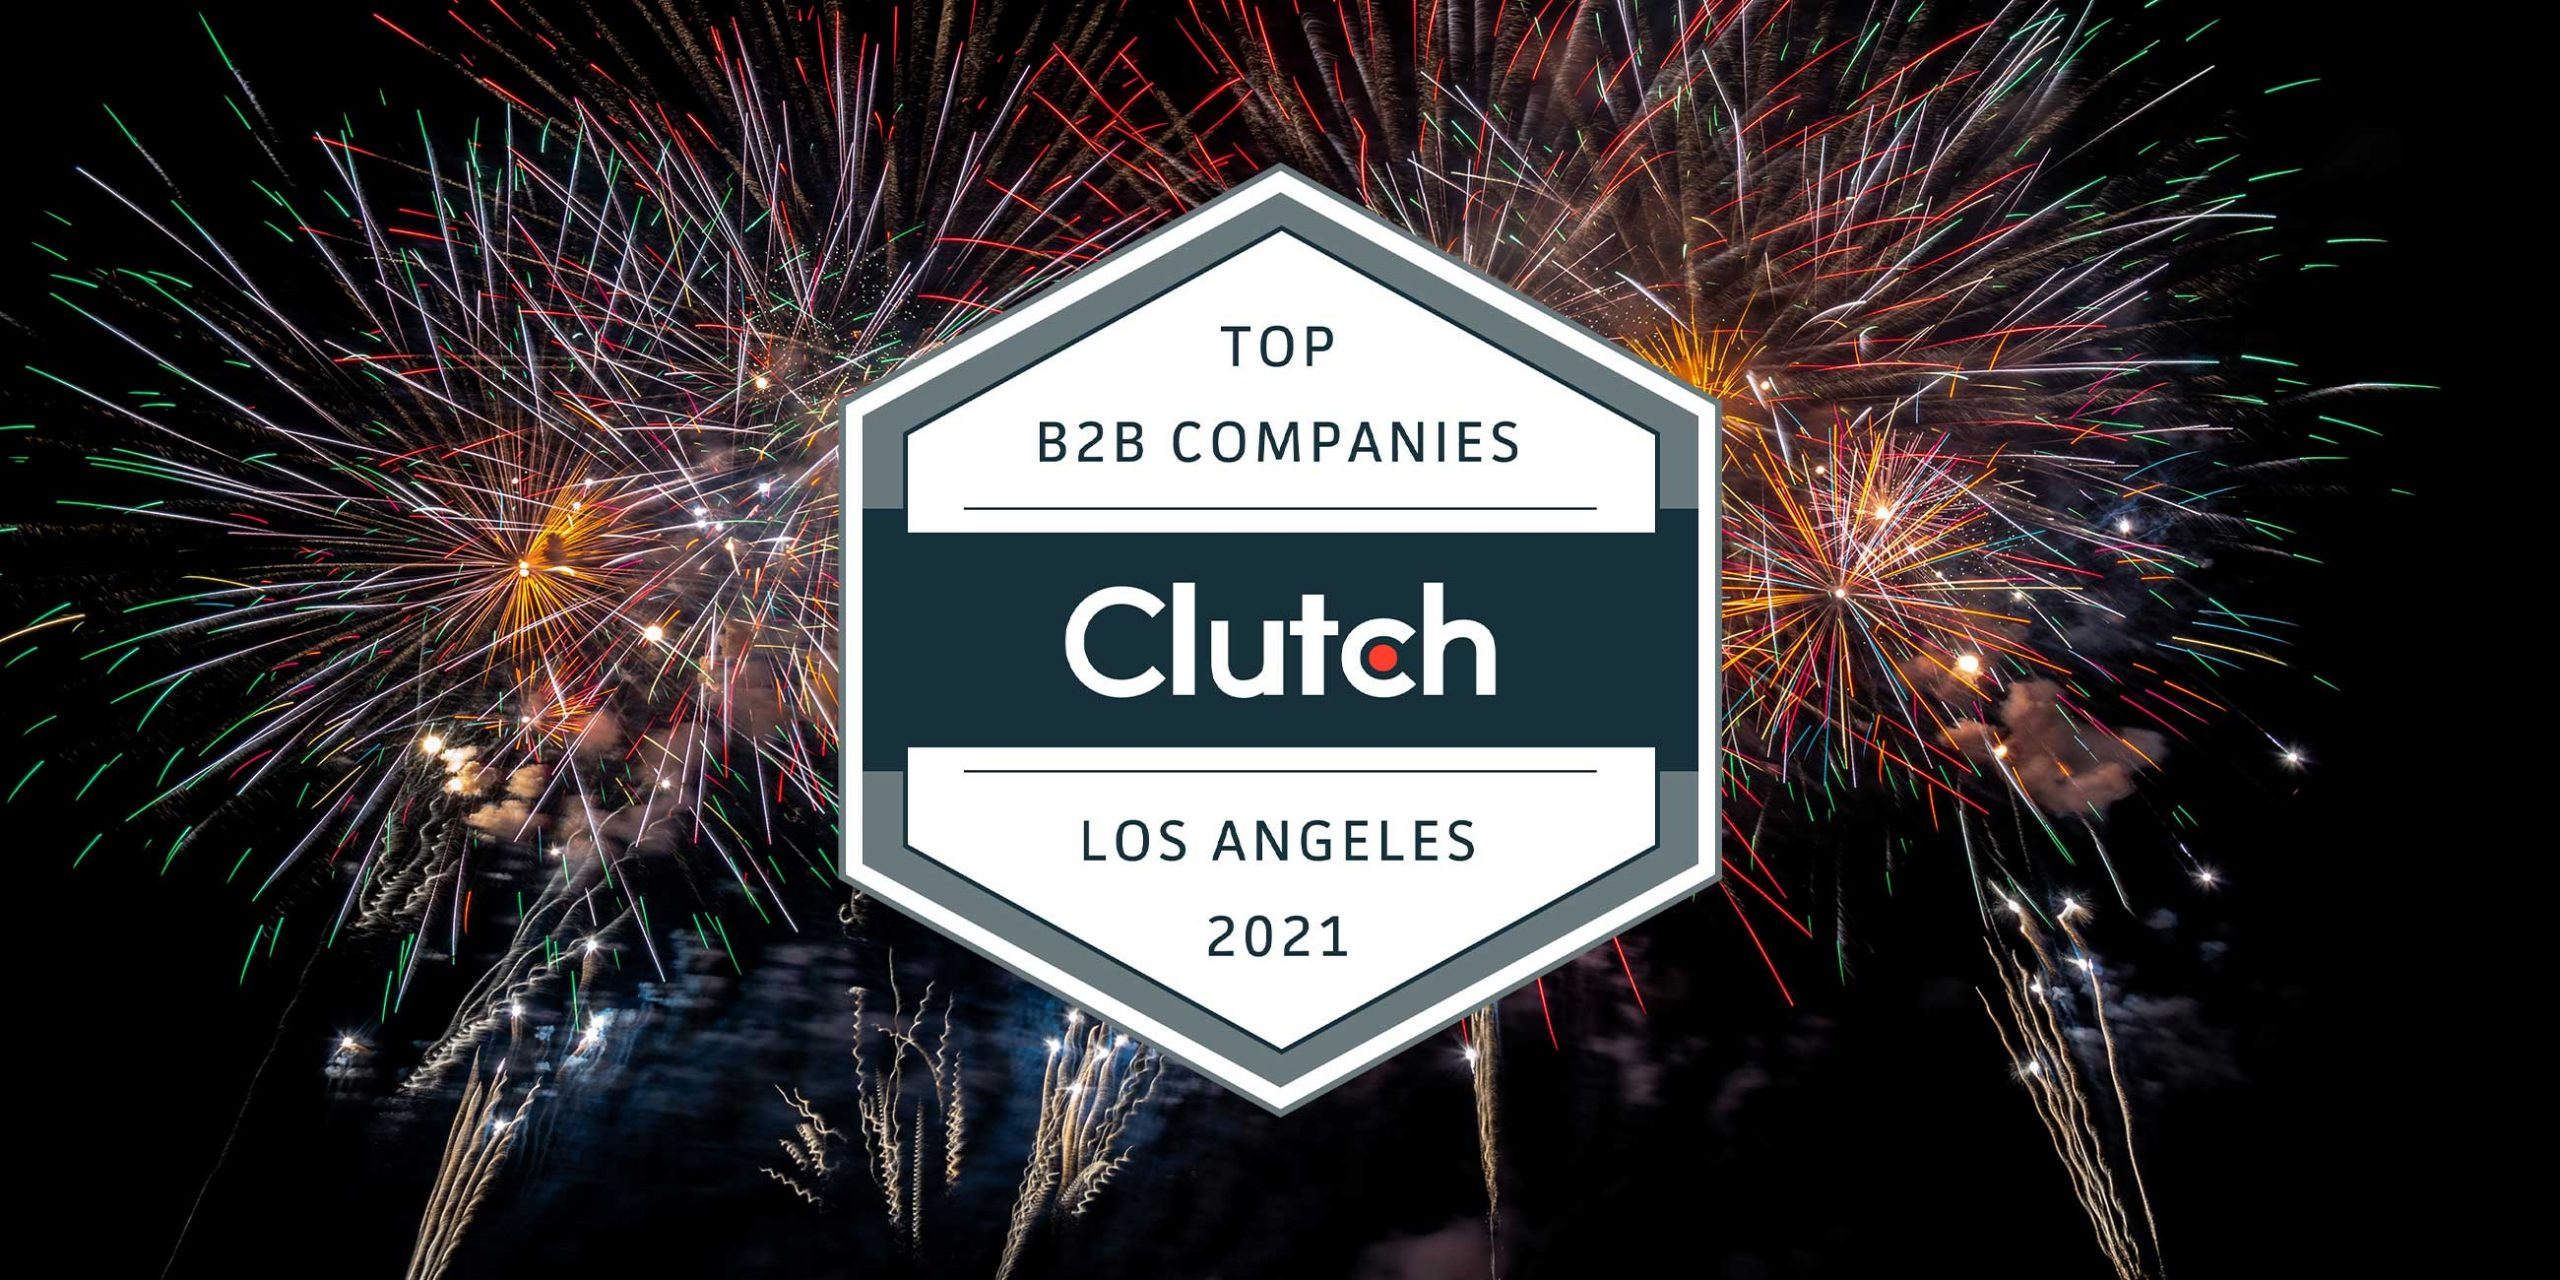 Clutch's Top B2B Provider in Los Angeles